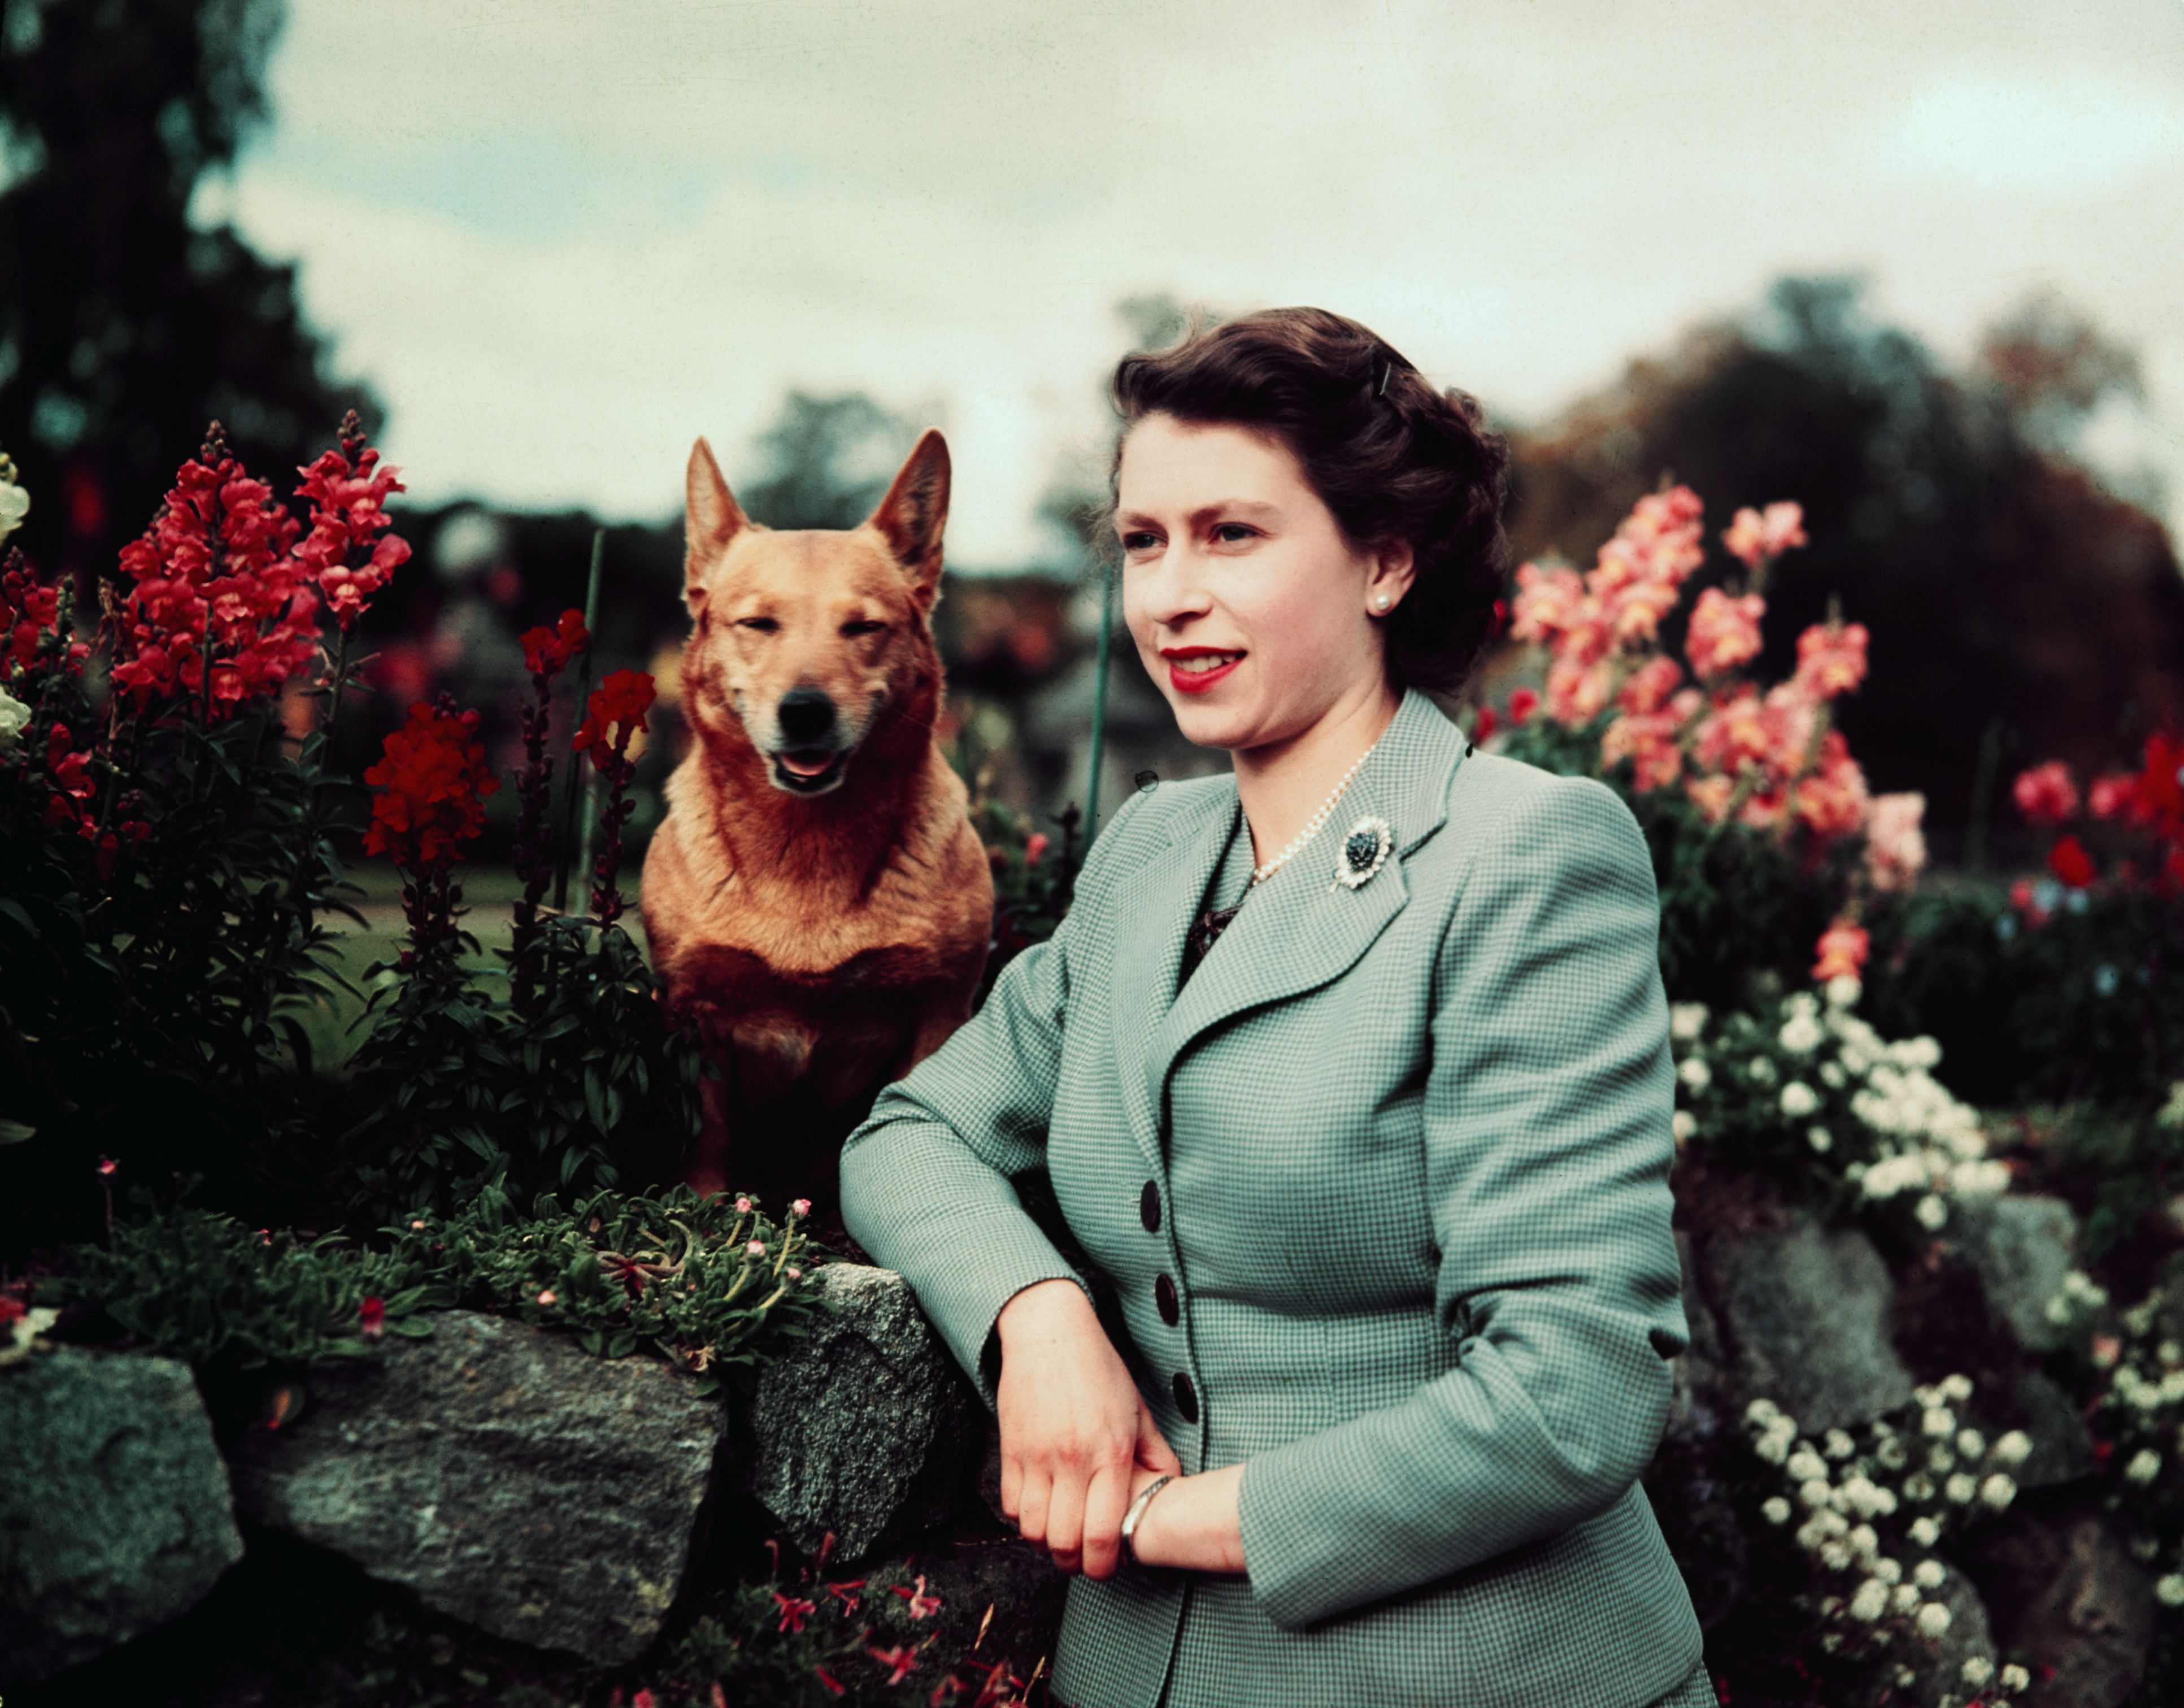 25 Photos of the Royal Family at Balmoral Castle, Queen Elizabeth's Favorite Home